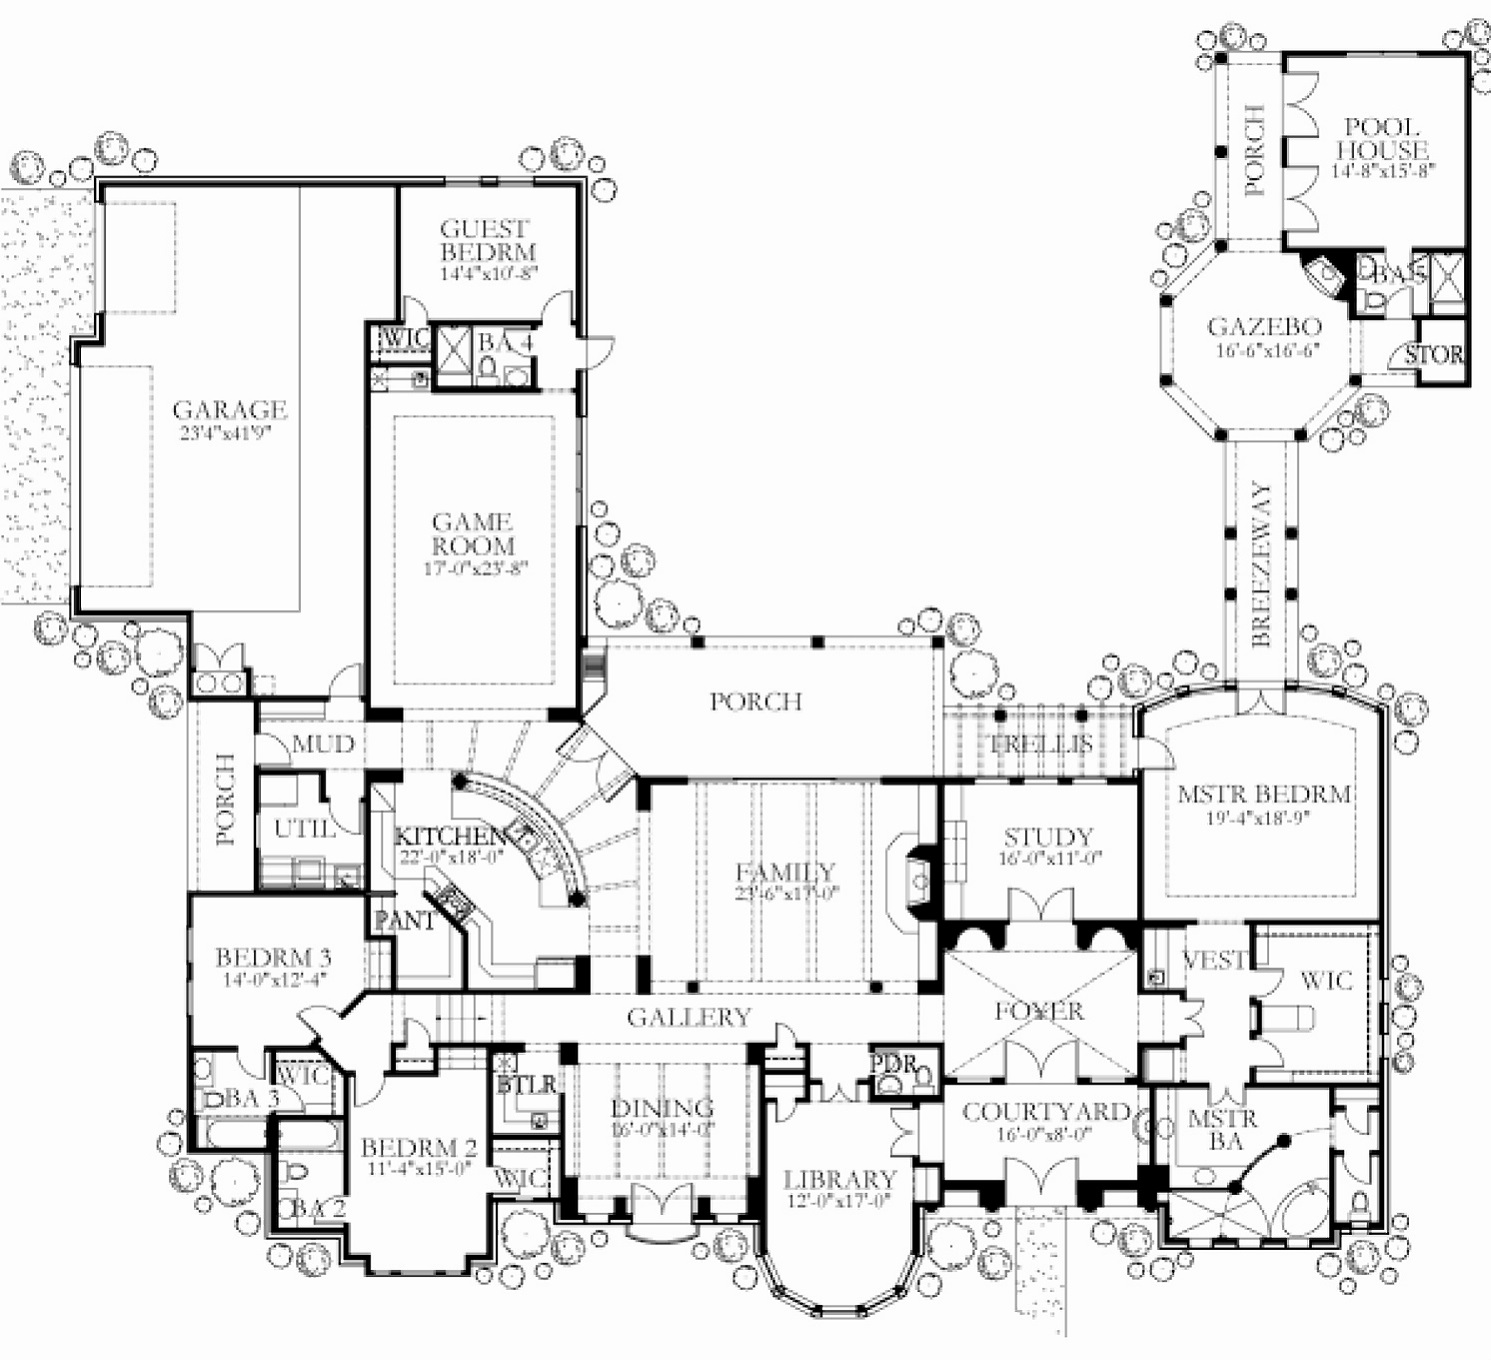 Floor plans glazier homes for 4500 sq ft home